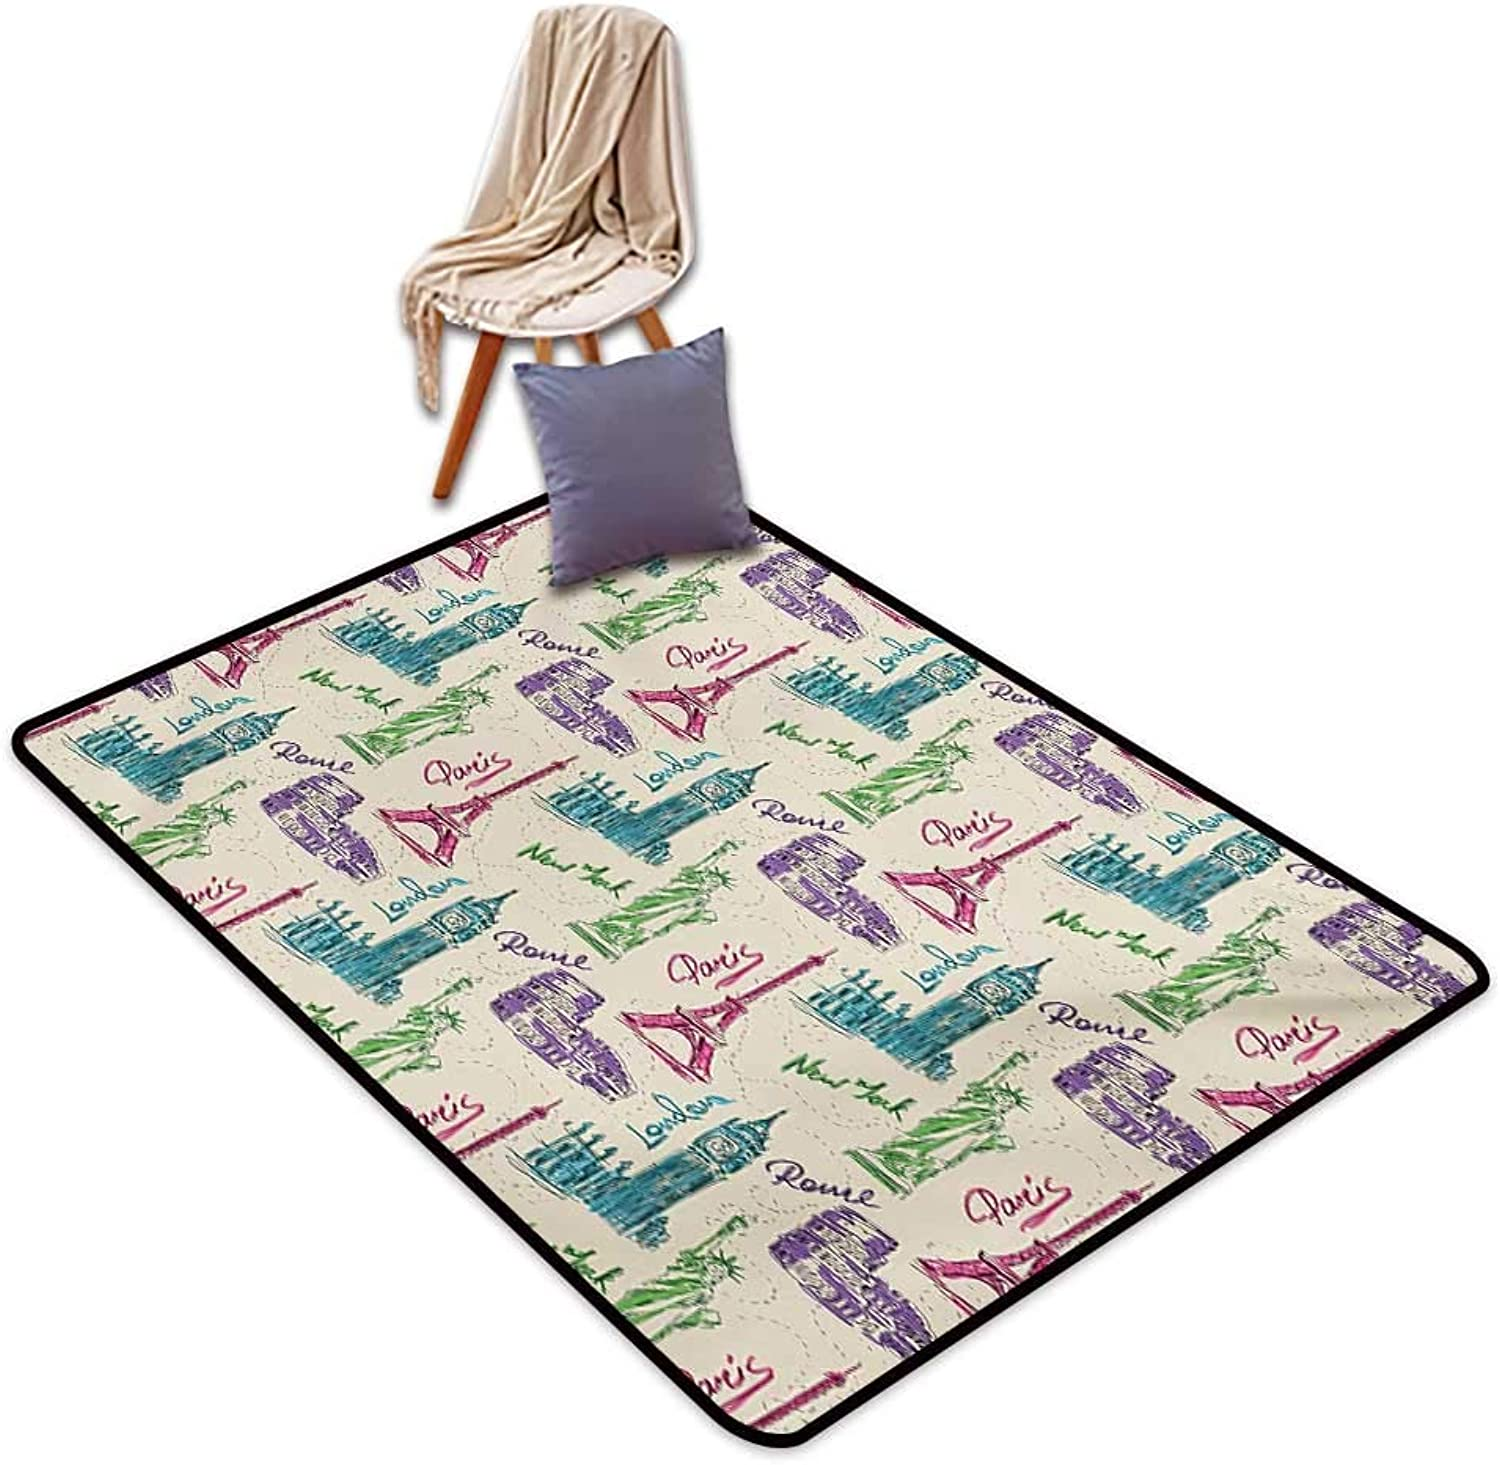 City Indoor Super Absorbs Mud Doormat Big Ben Eiffel Tower Statue of Liberty Colosseum Doodle Sketch Tourist Attractions Water Absorption, Anti-Skid and Oil Proof 48  Wx59 L Multicolor